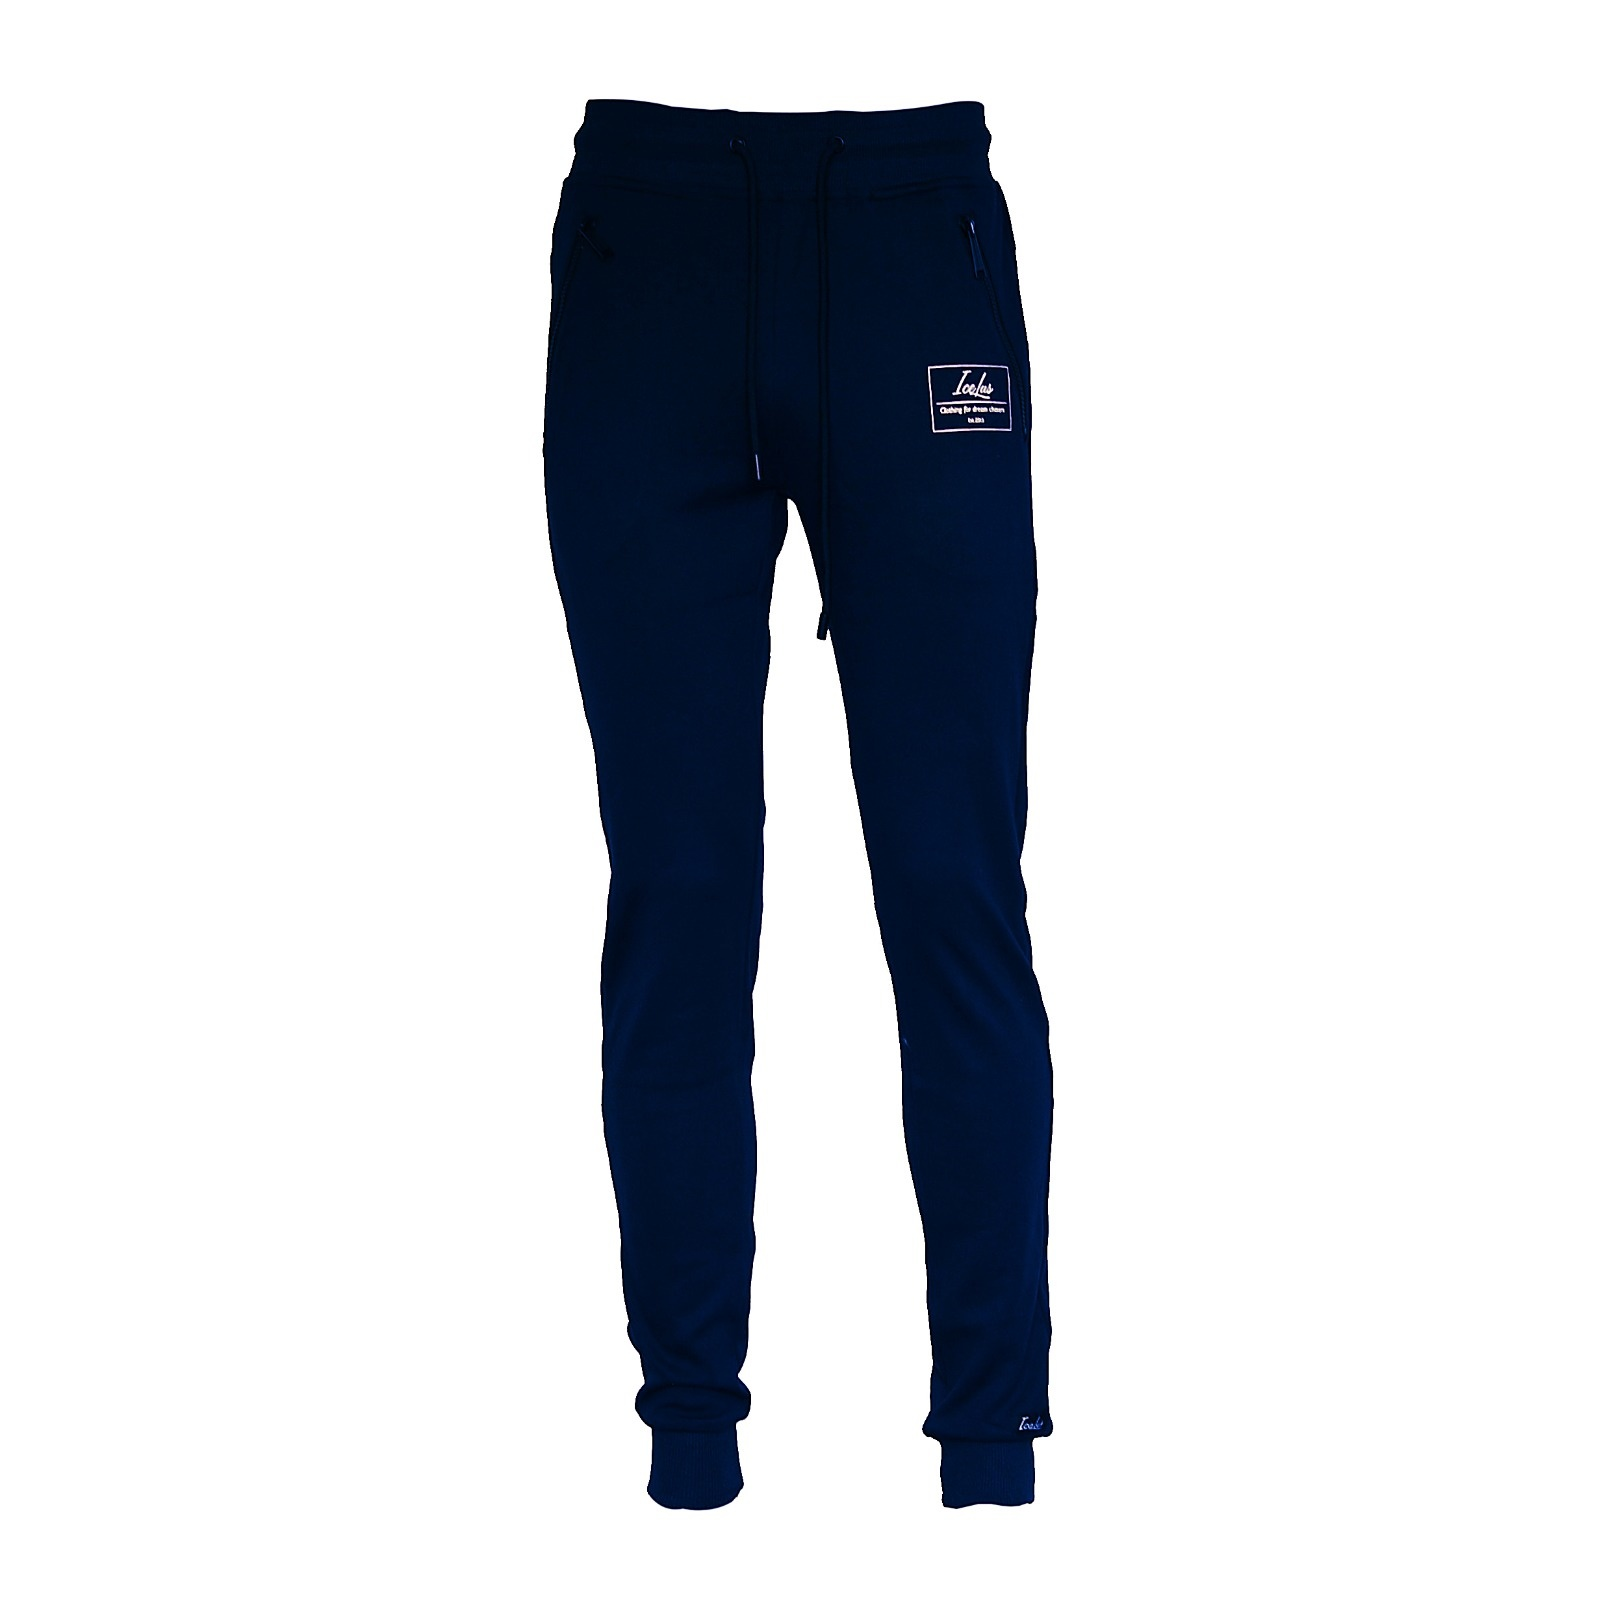 Icelus Clothing Icelus Pants Blue